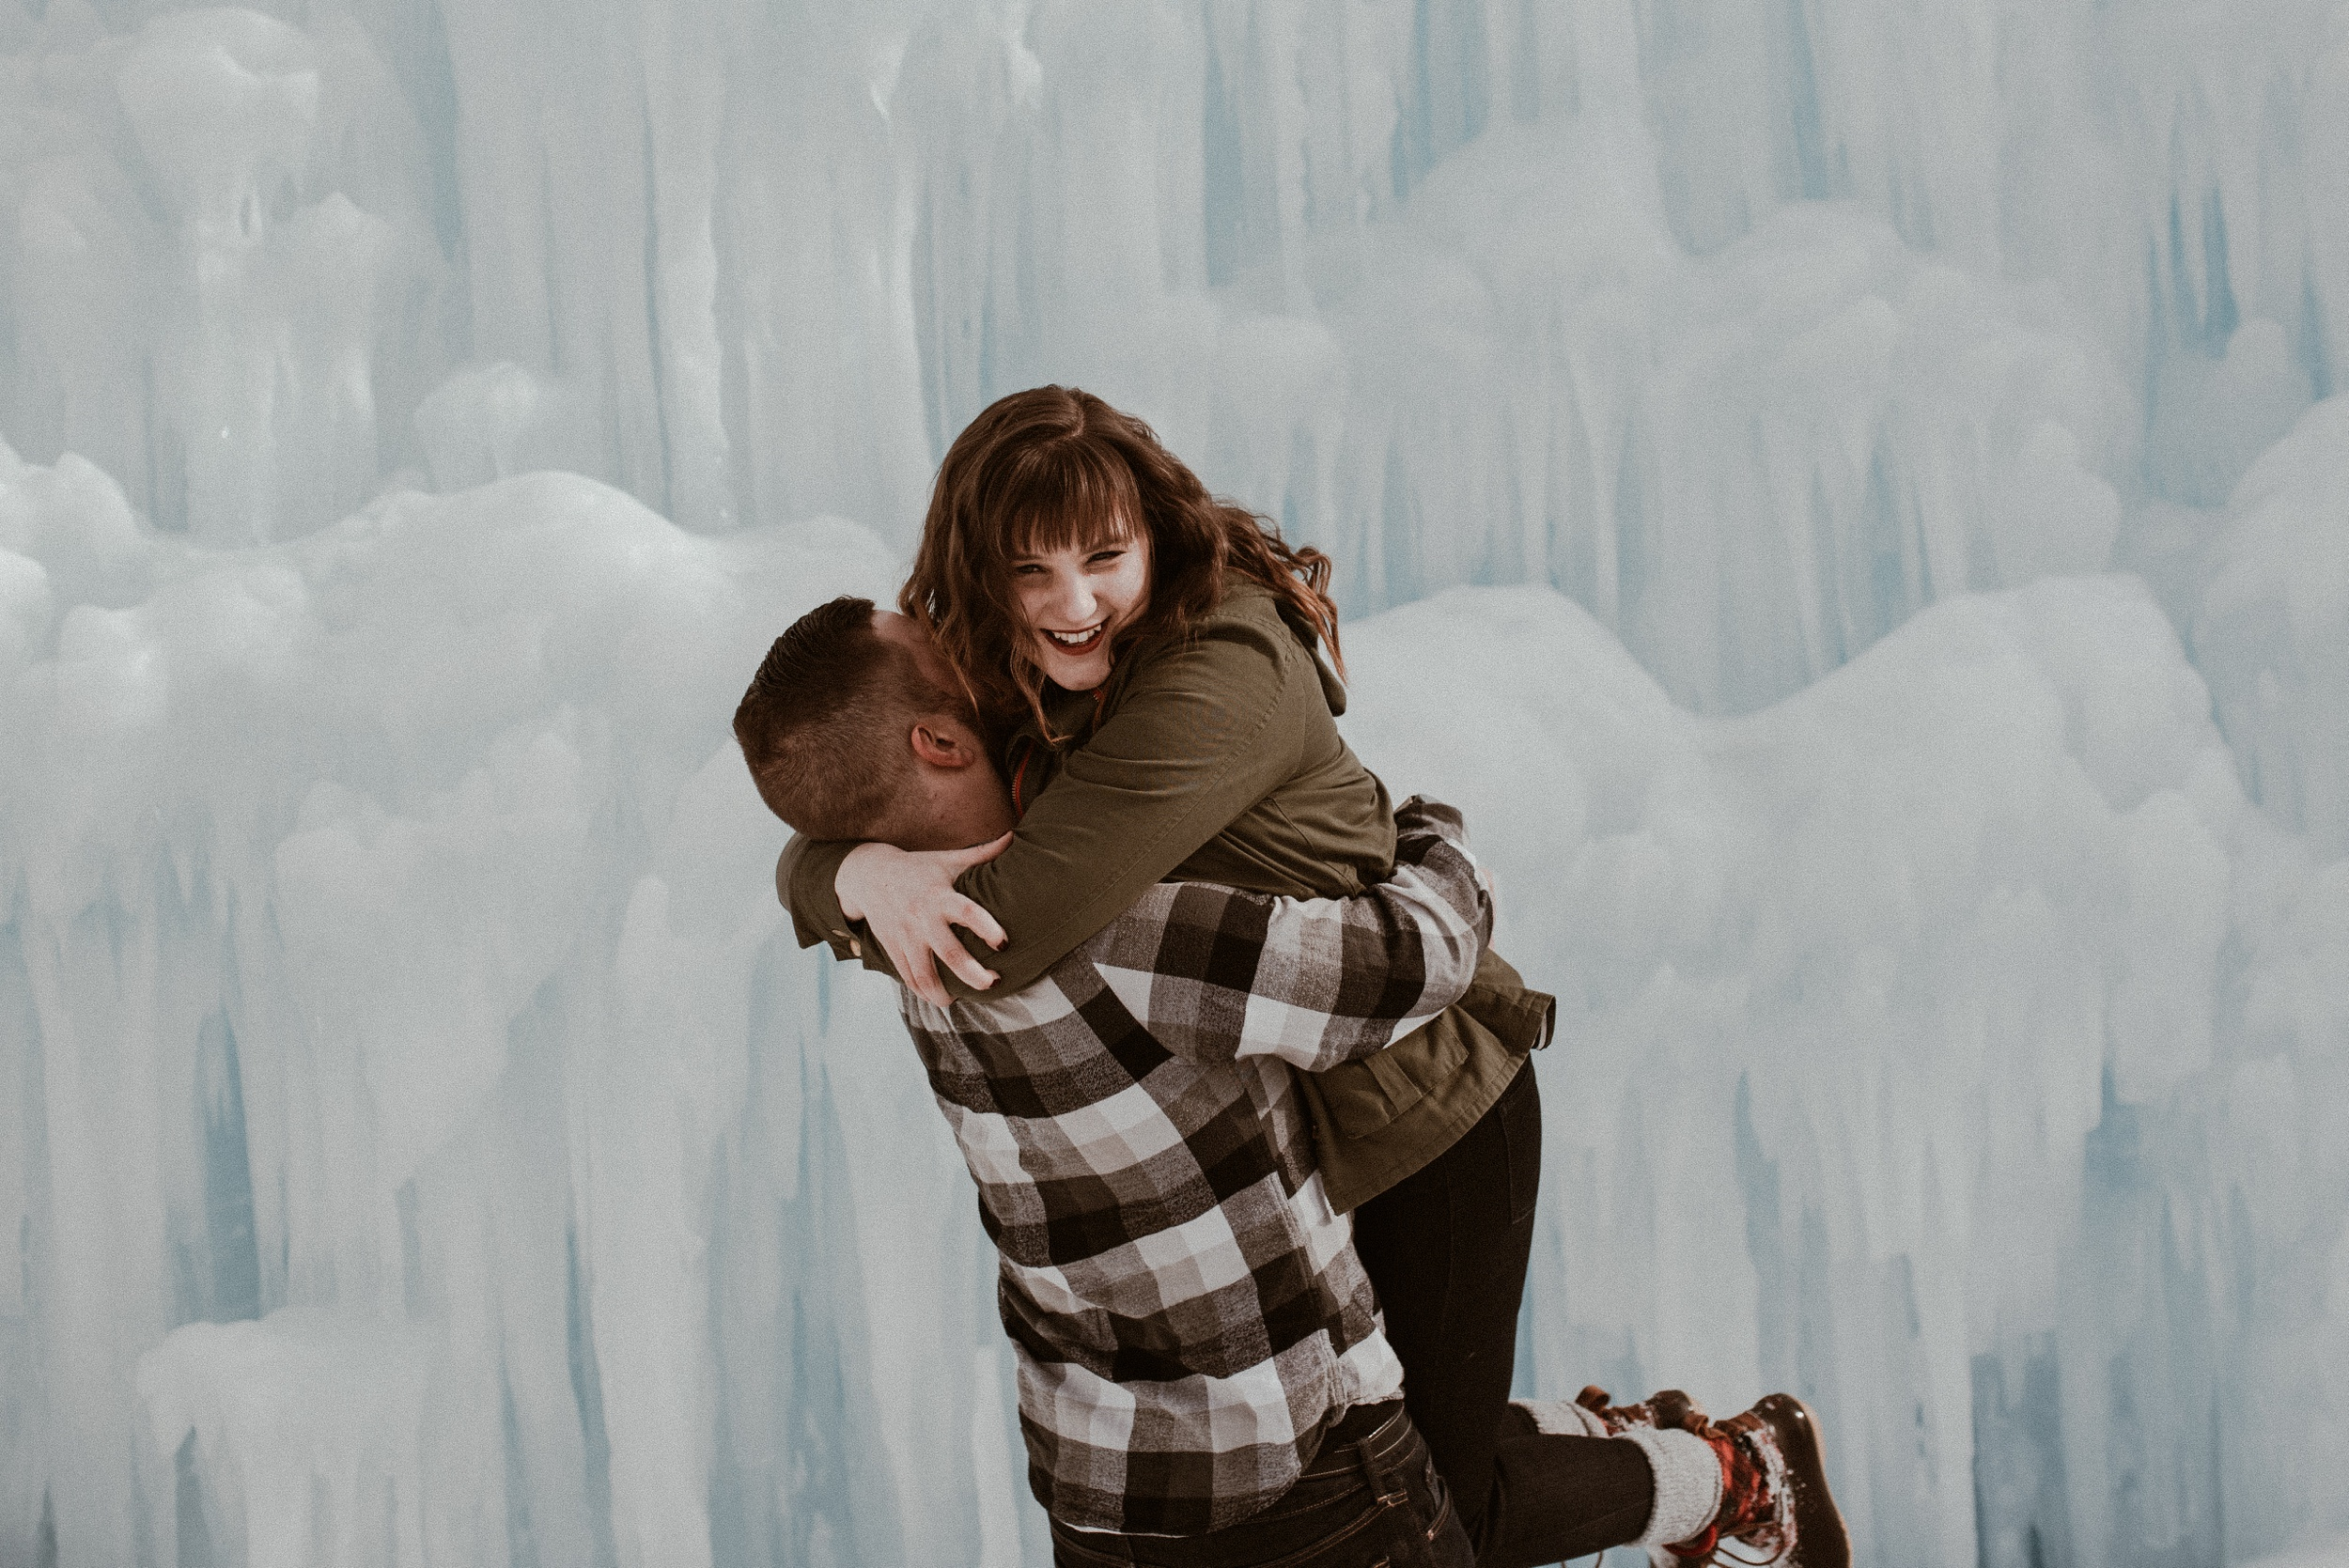 ice-castles-nh-engagement-session-boston-wedding-photographer-vanessa-alves-photography23.jpg